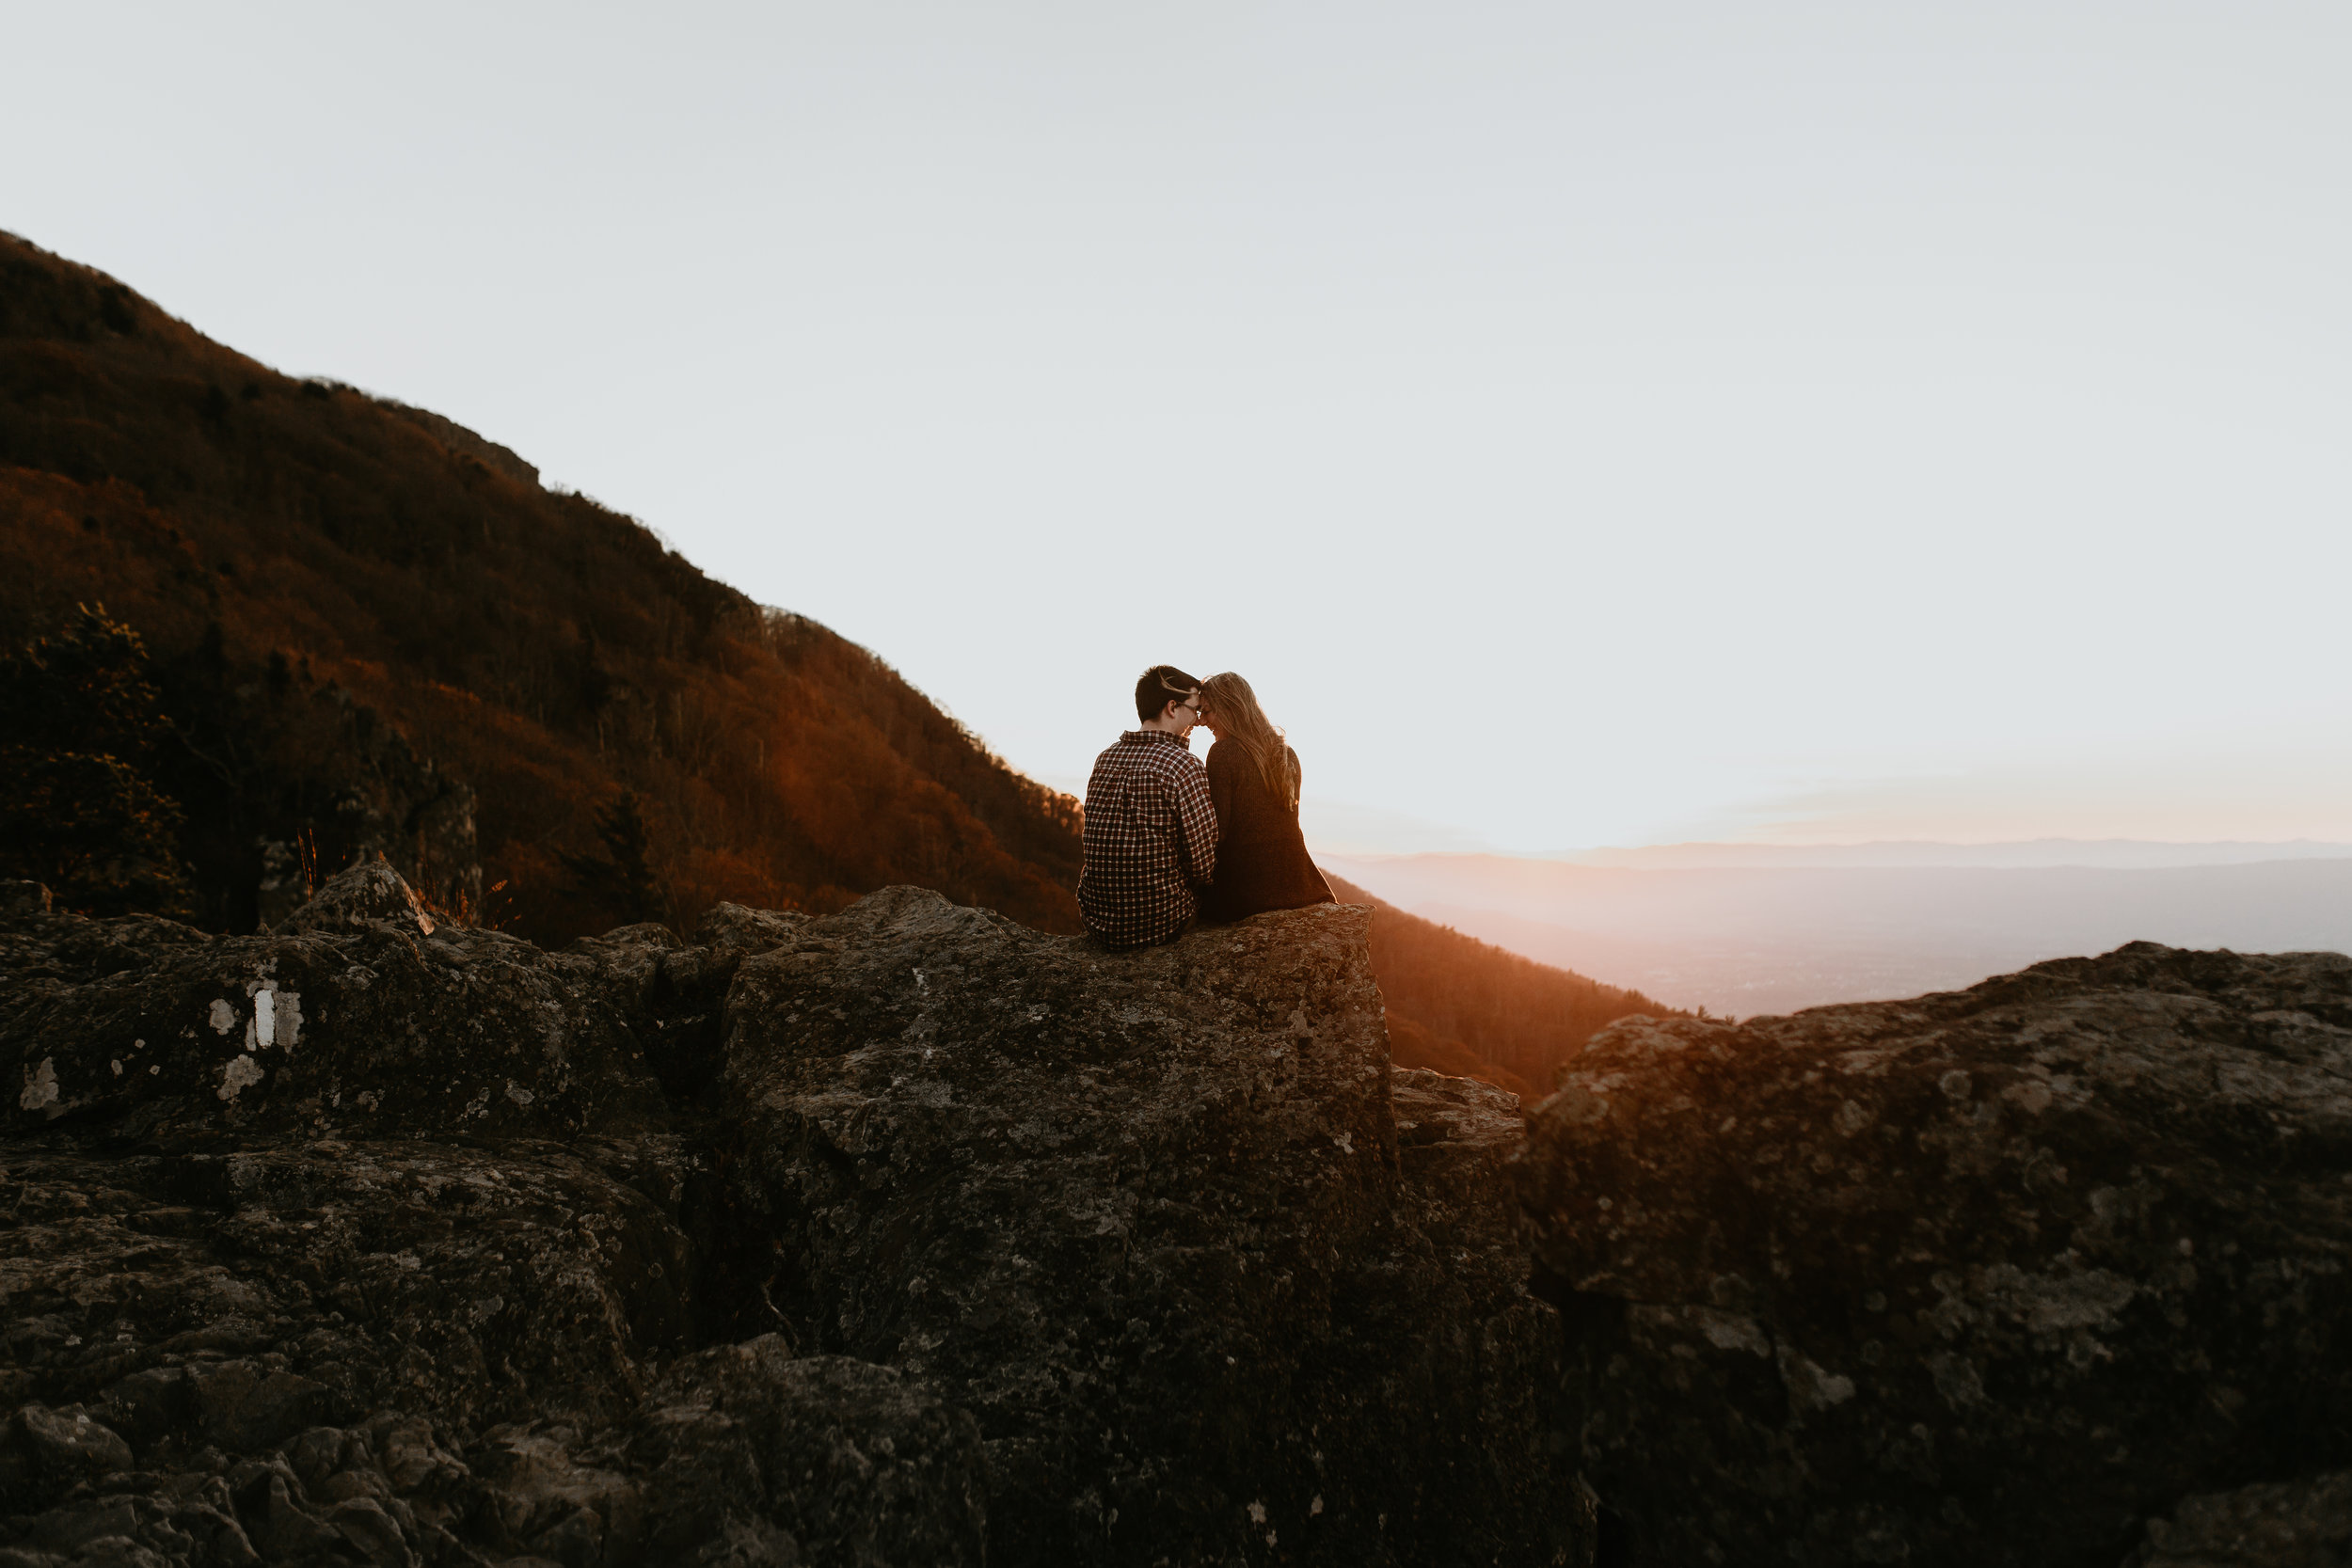 nicole-daacke-photography-shenandoah-national-park-adventure-engagement-session-with-fall-foliage-shenandoah-elopement-photographer-engagement-photos-in-virginia-charlottesville-national-park-adventure-elopement-photographer-3934.jpg